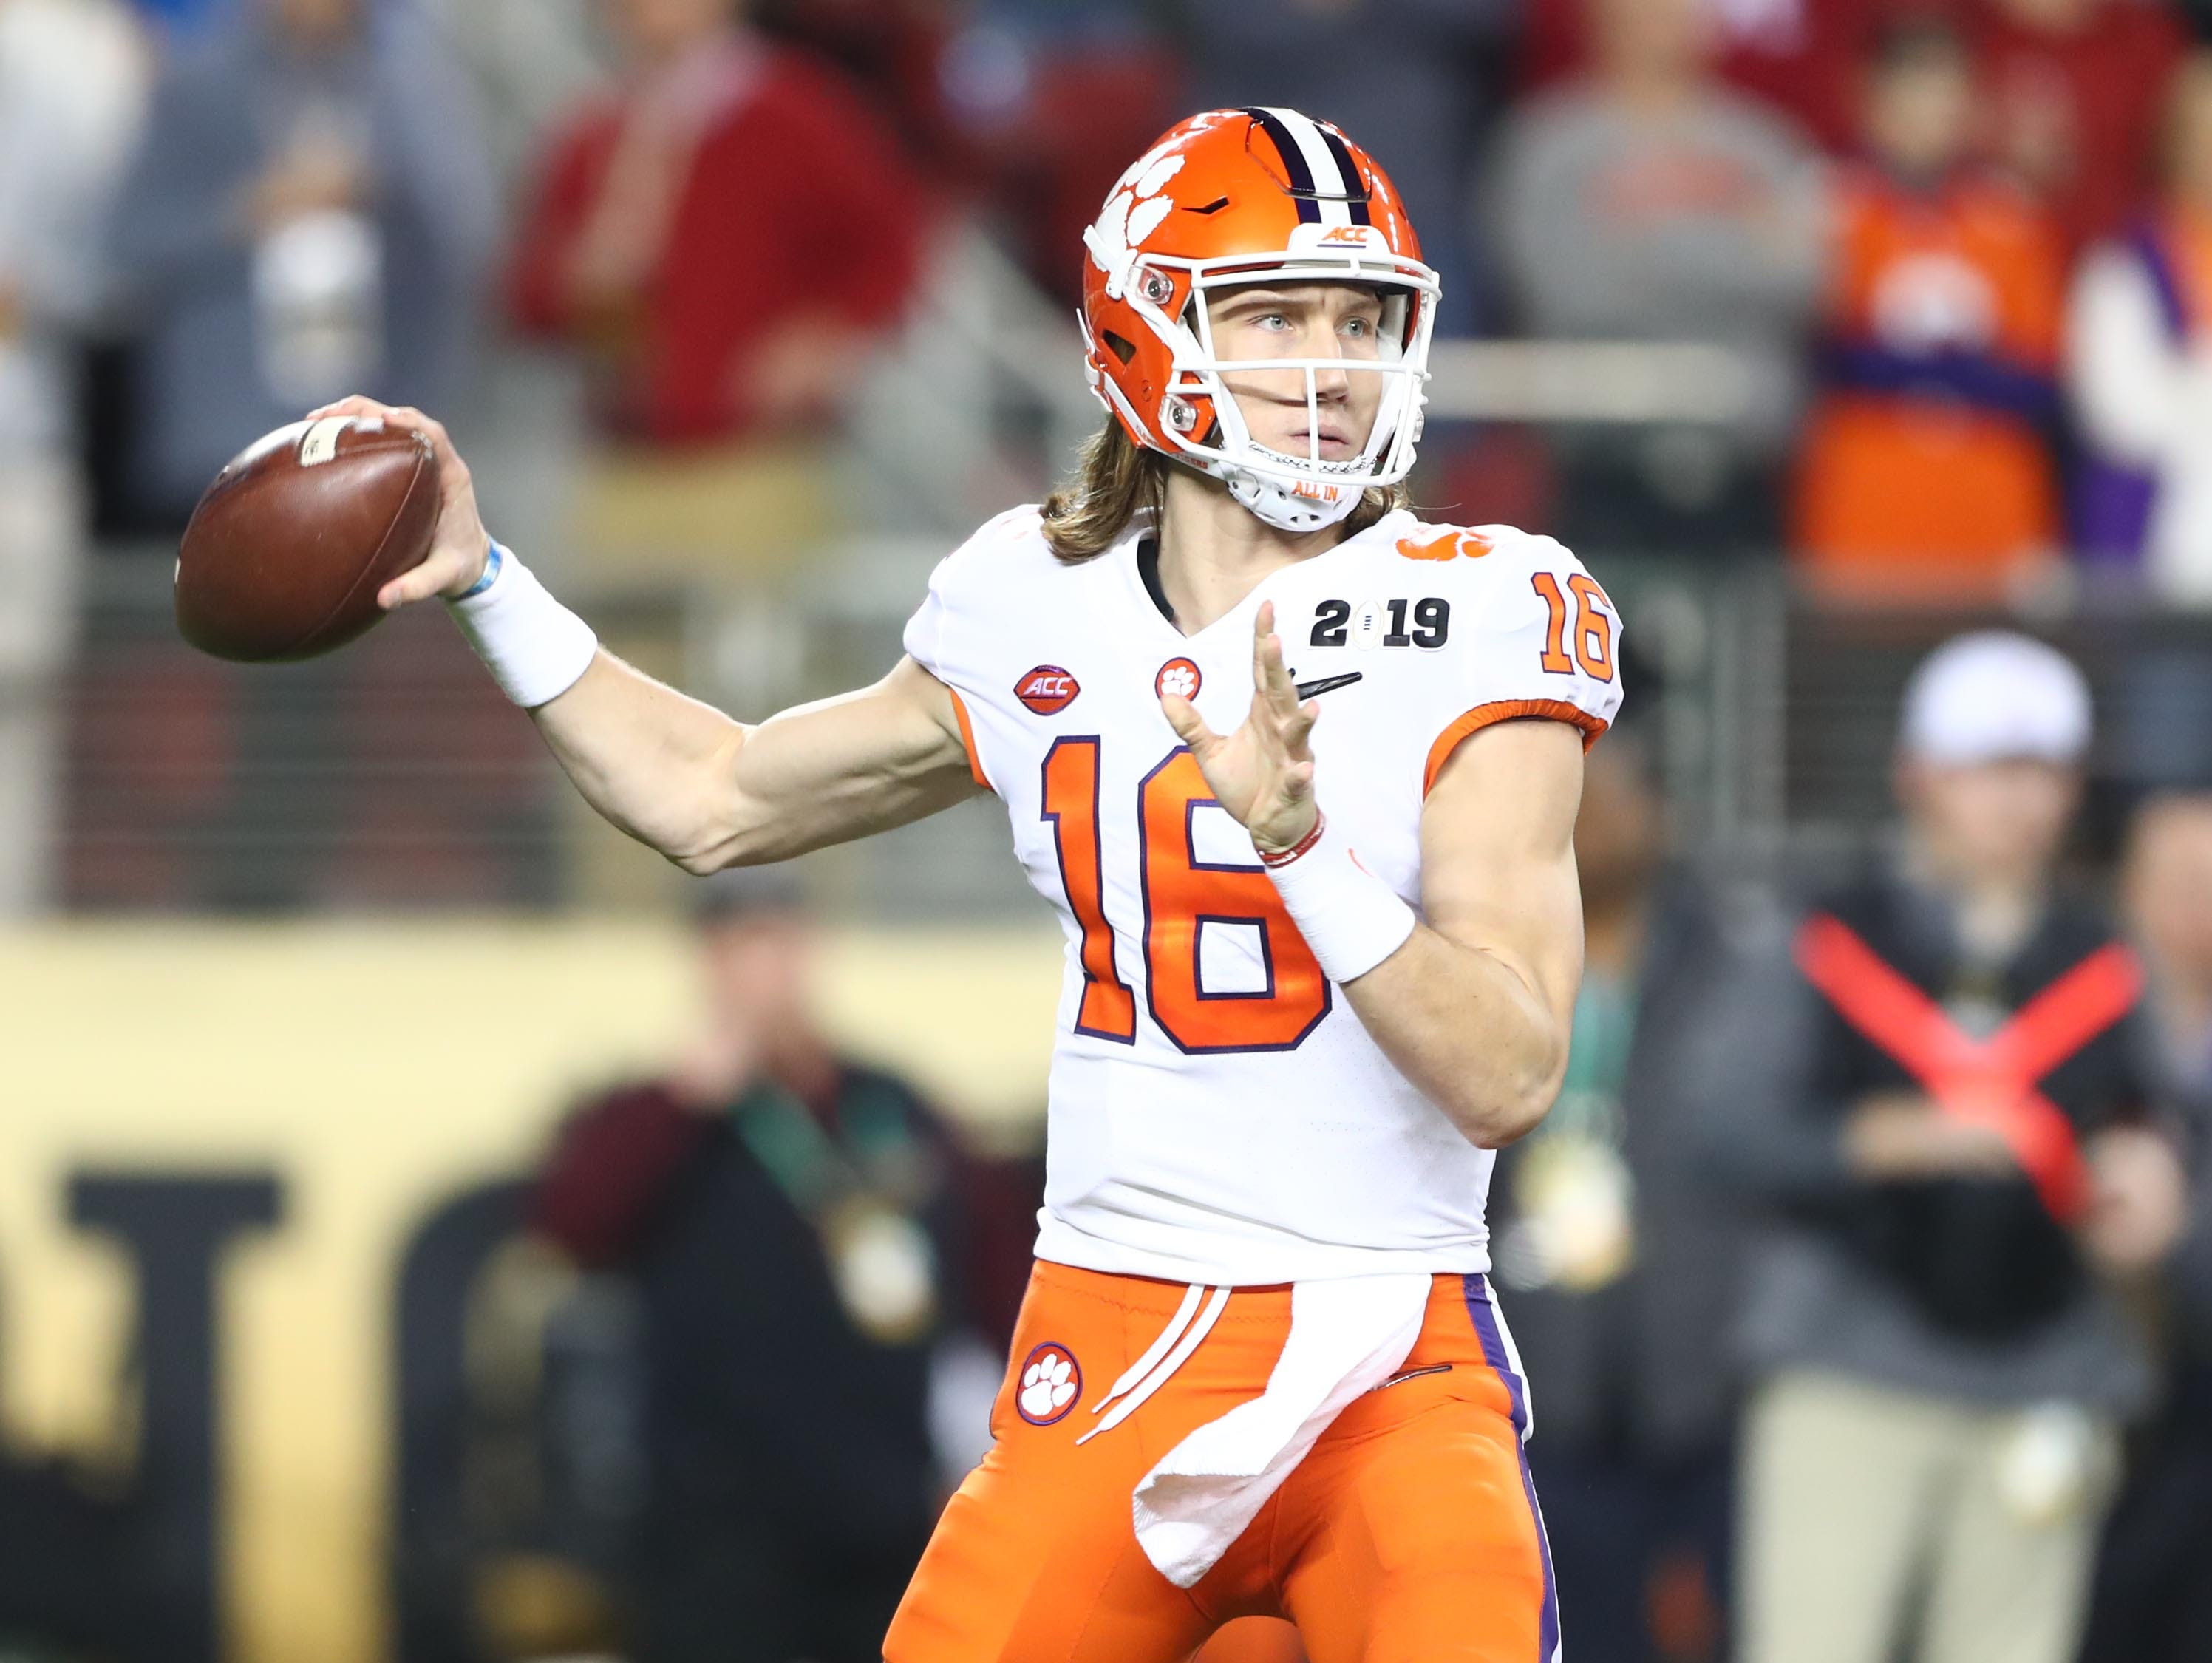 Jan 7, 2019; Santa Clara, CA, USA; Clemson Tigers quarterback Trevor Lawrence (16) throws a pass against the Alabama Crimson Tide in the first half during the 2019 College Football Playoff Championship game at Levi's Stadium. Mandatory Credit: Mark J. Rebilas-USA TODAY Sports